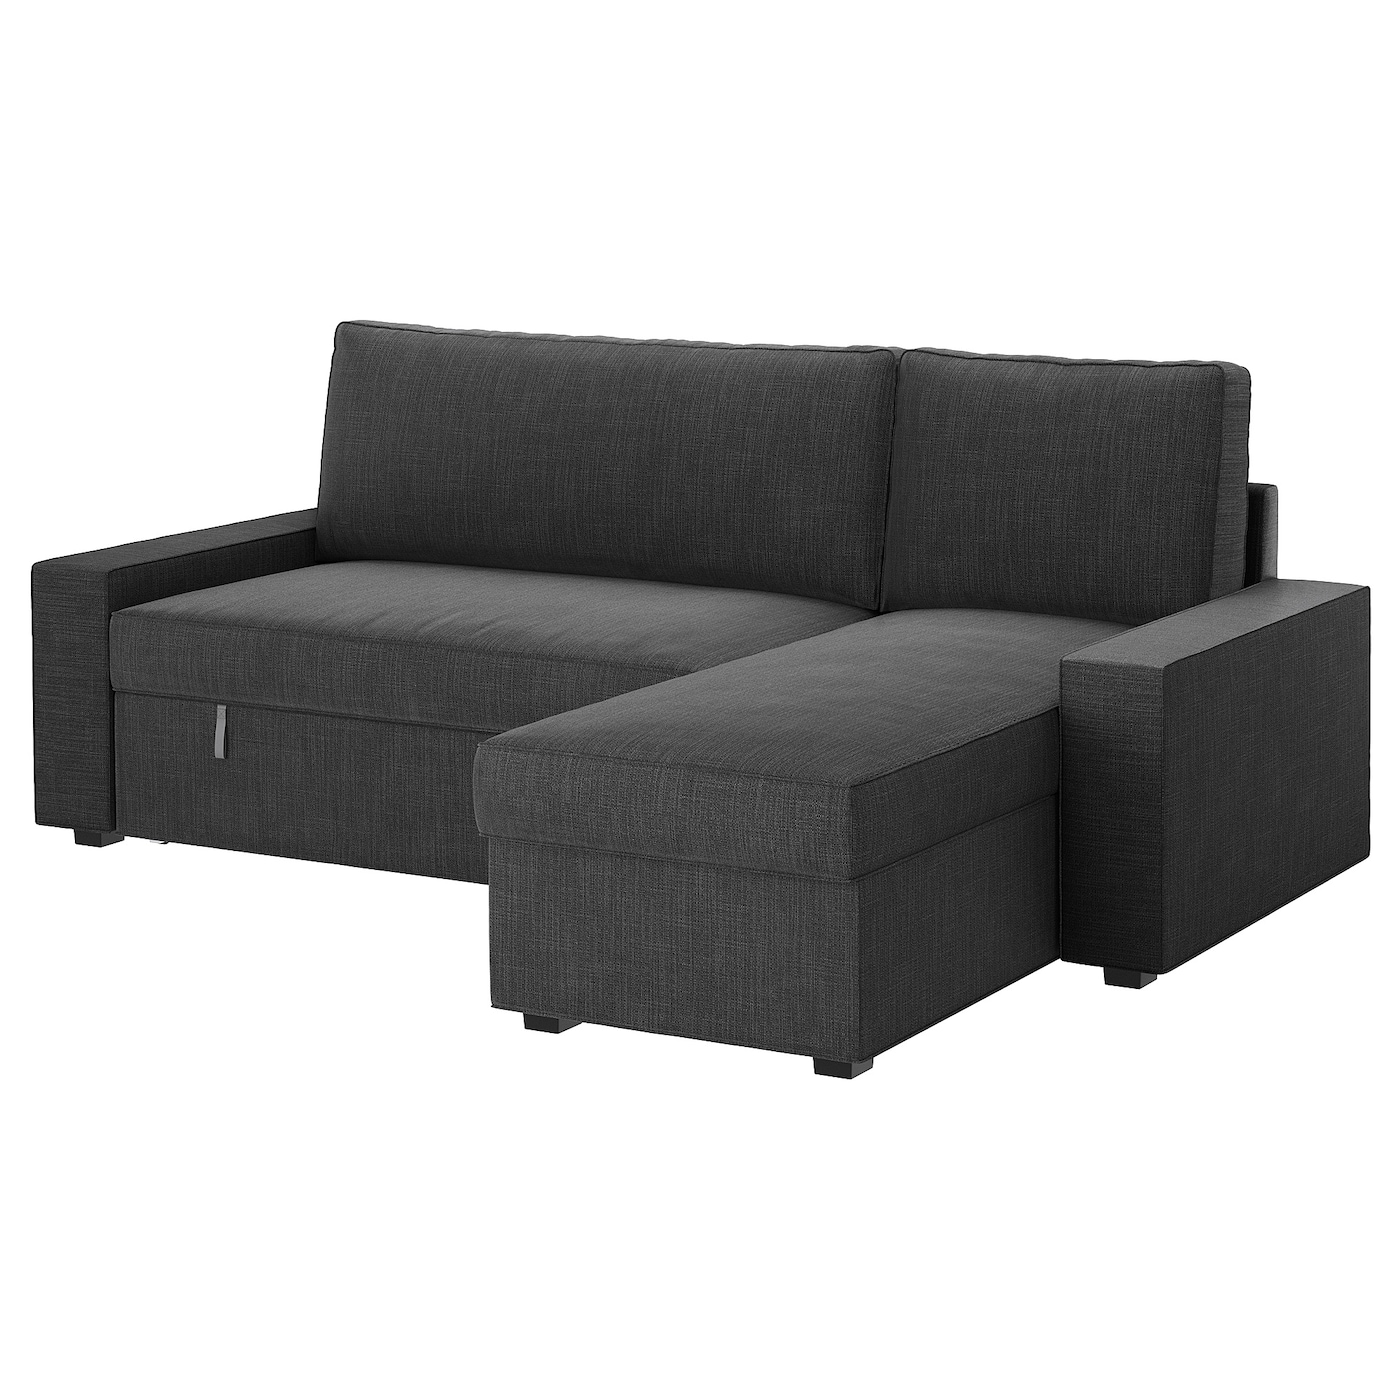 Vilasund sofa bed with chaise longue hillared anthracite for Couch 700 euro